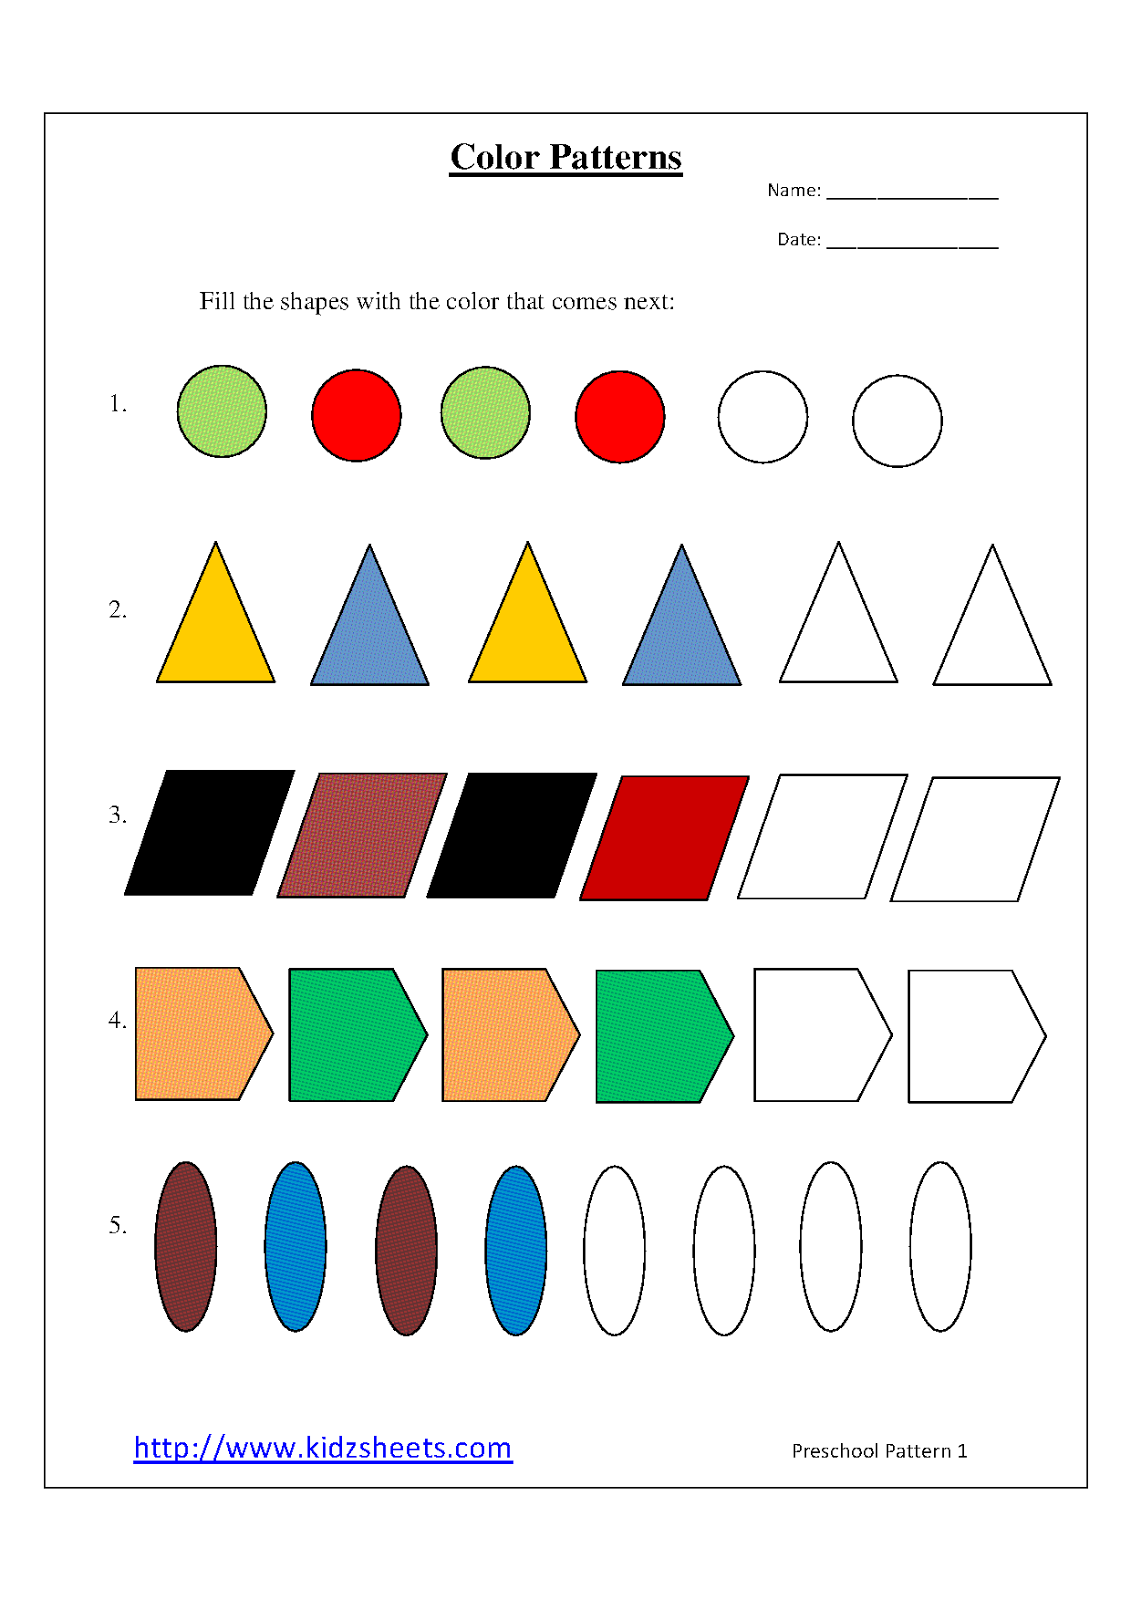 Kidz Worksheets: Preschool Color Patterns Worksheet1 [ 1600 x 1131 Pixel ]